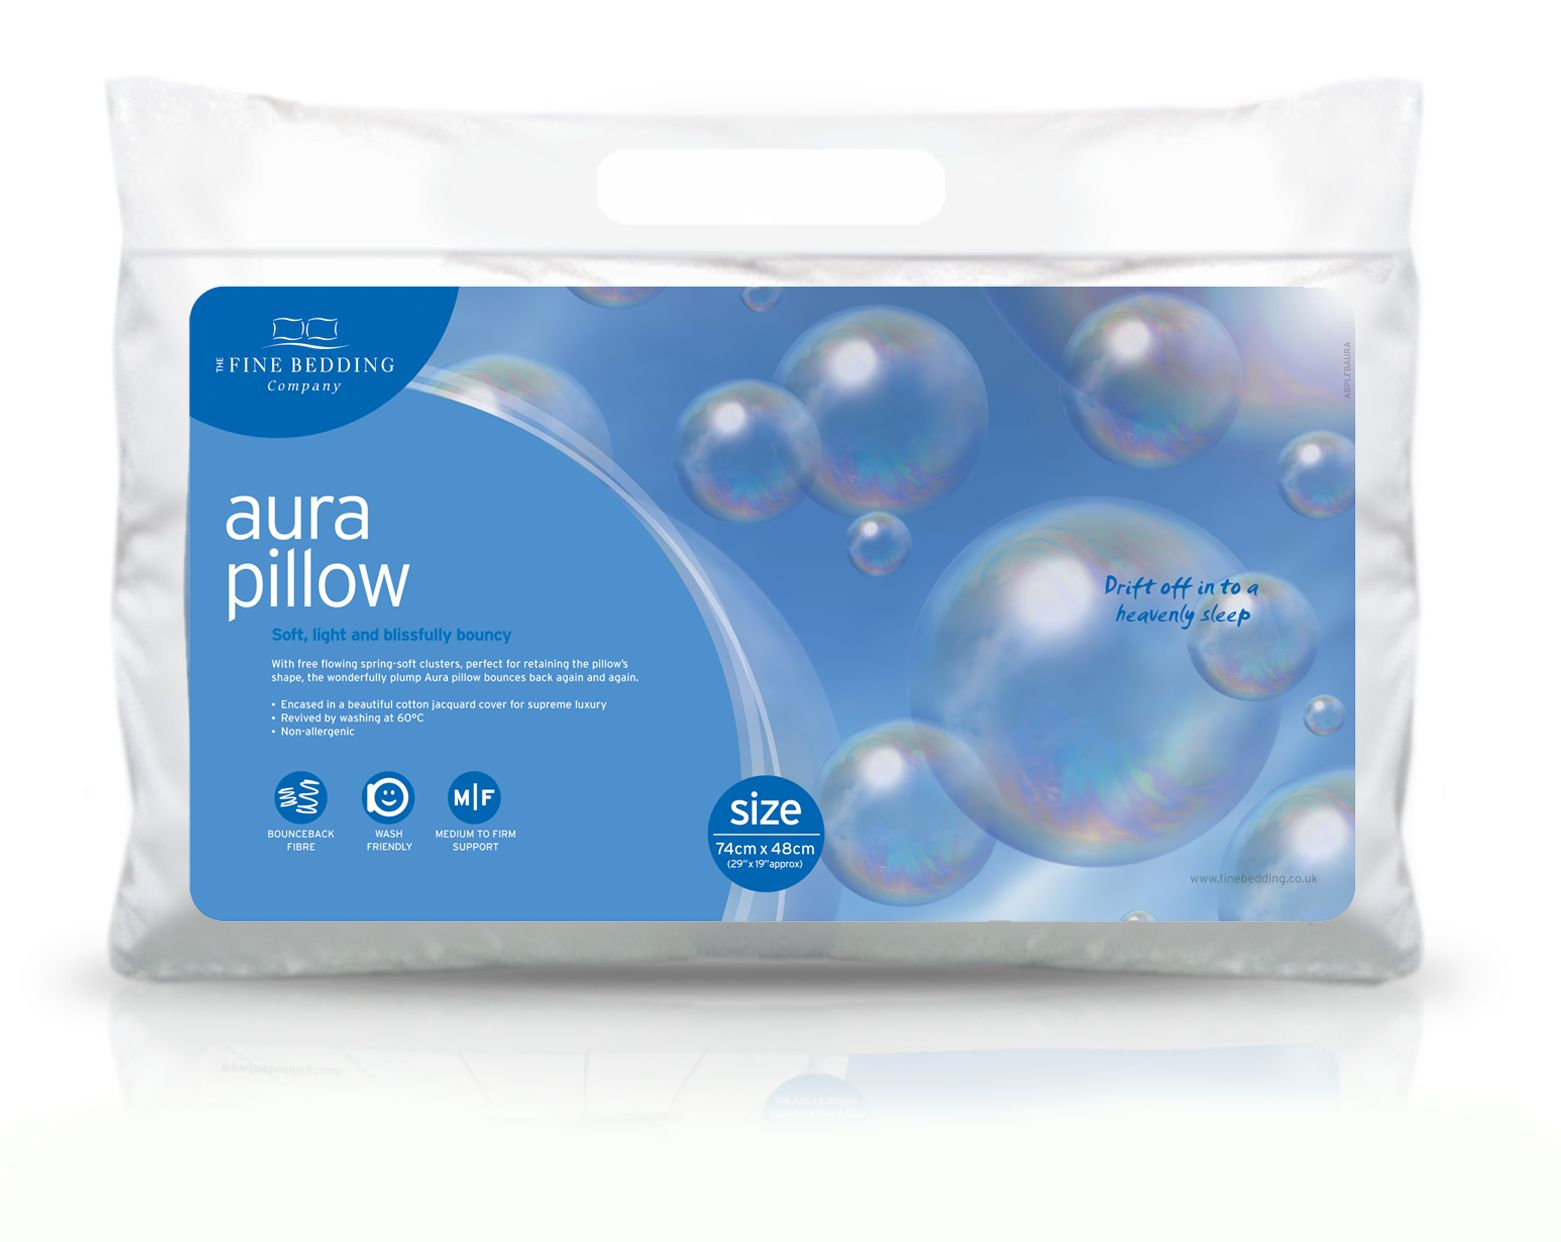 Aura pillow